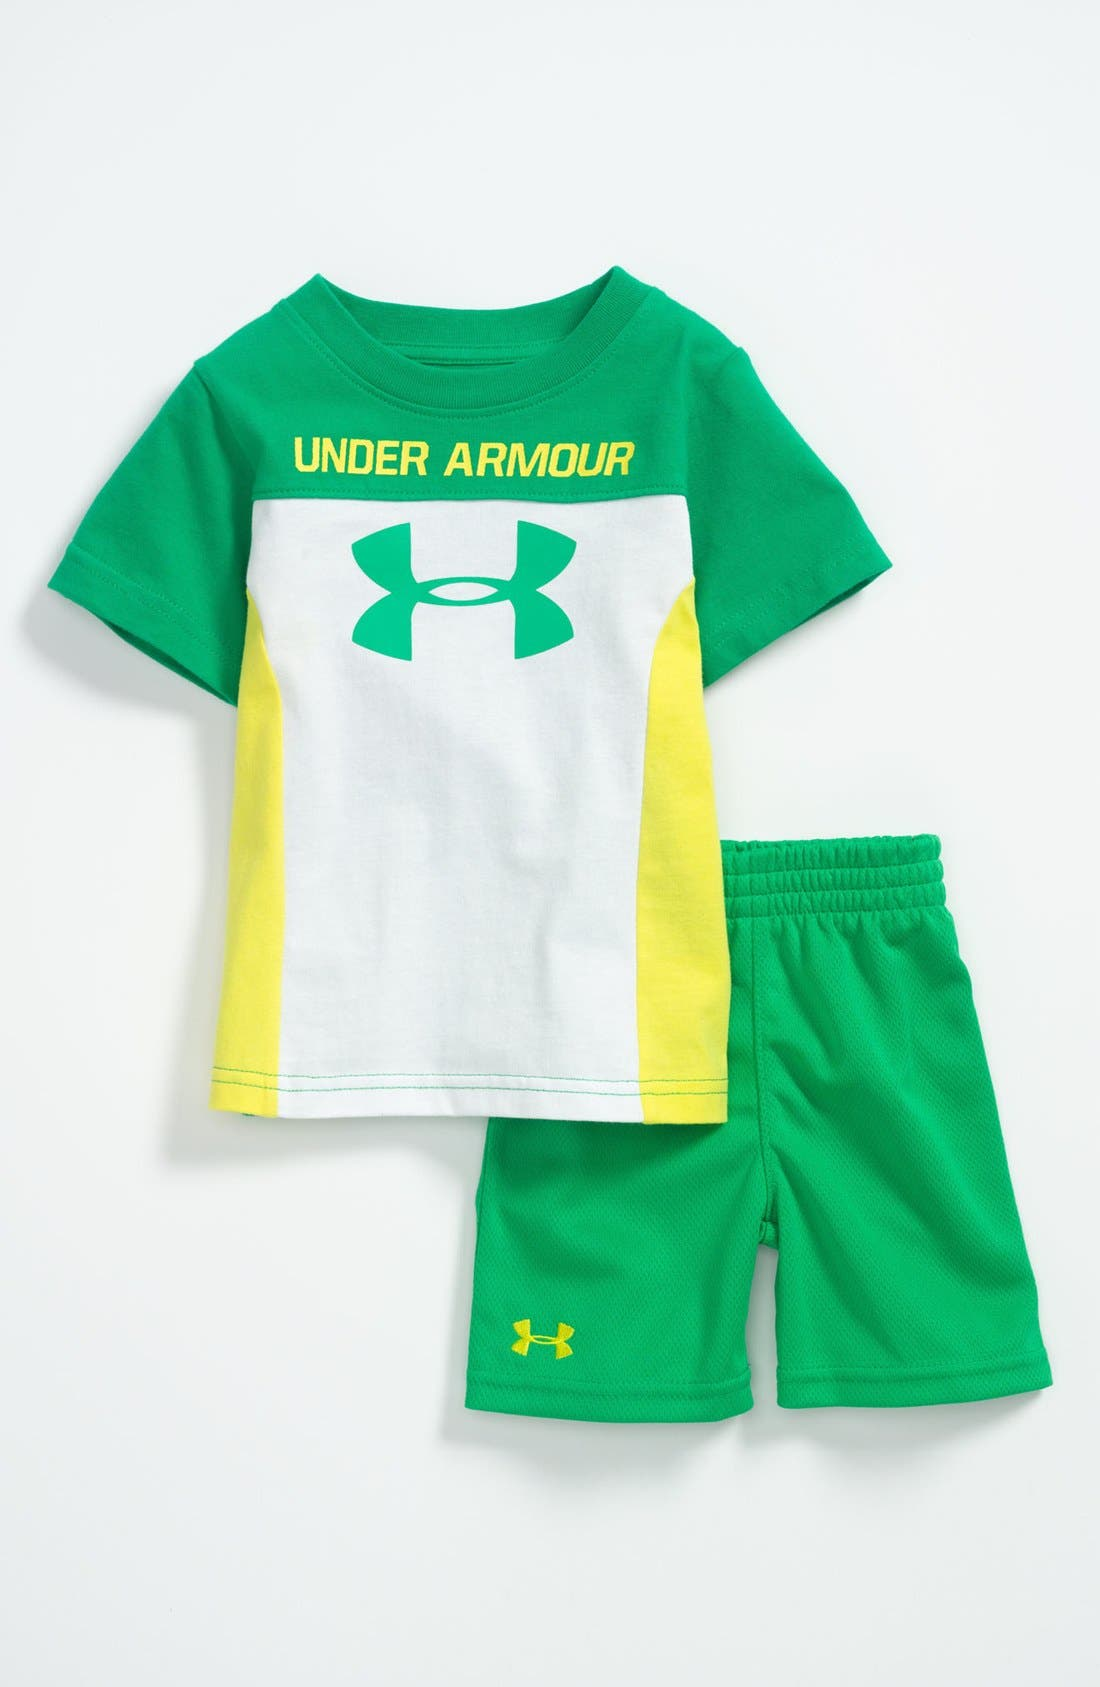 Main Image - Under Armour 'Mixed Media' T-Shirt & Shorts (Baby)